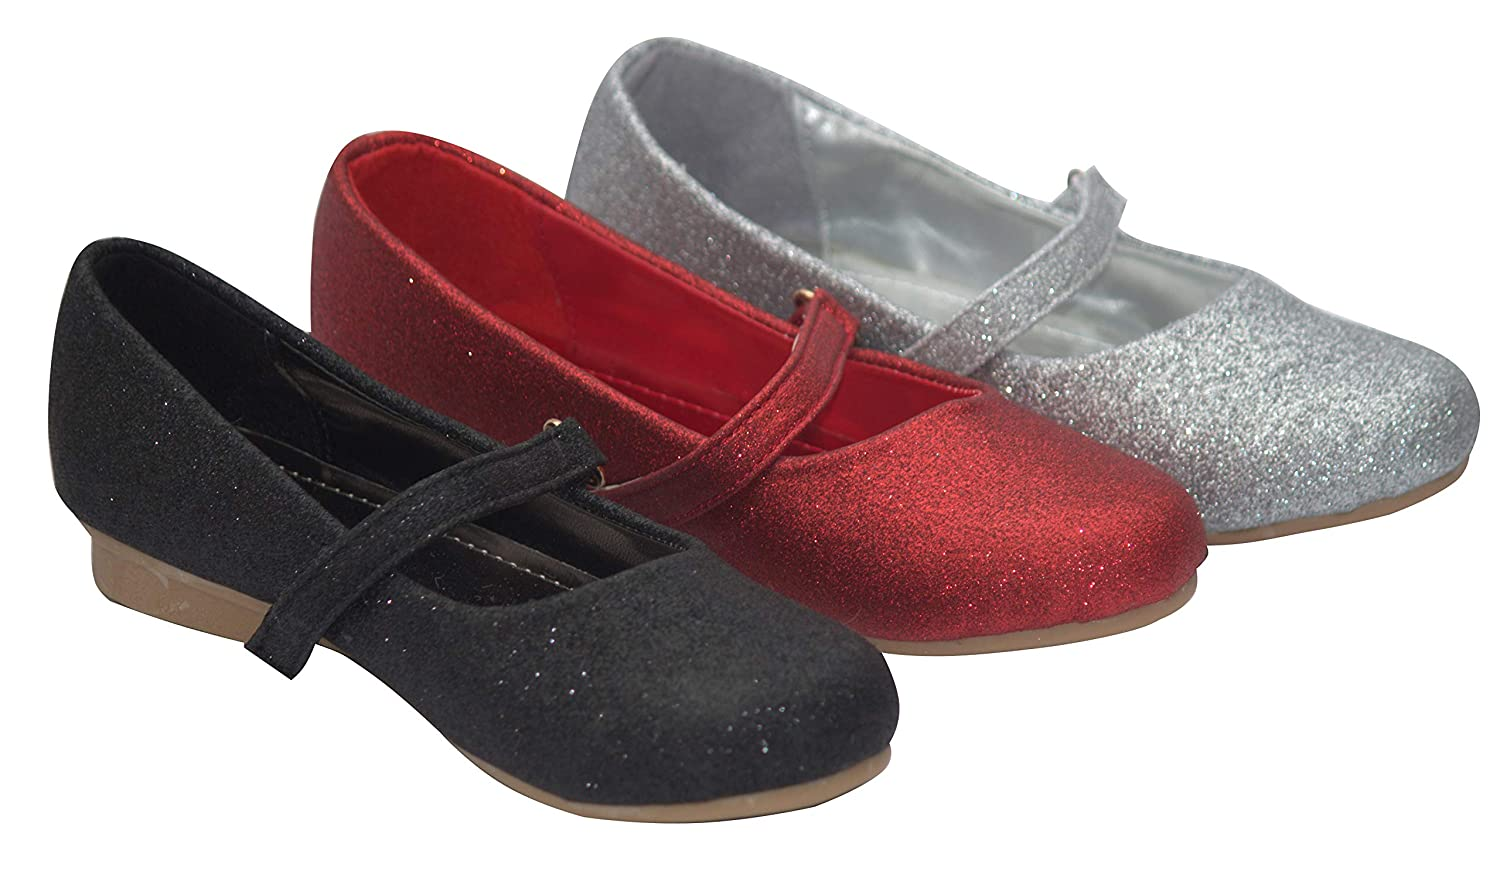 New Girls Party Birthday Evening Dressy Flat Shoes